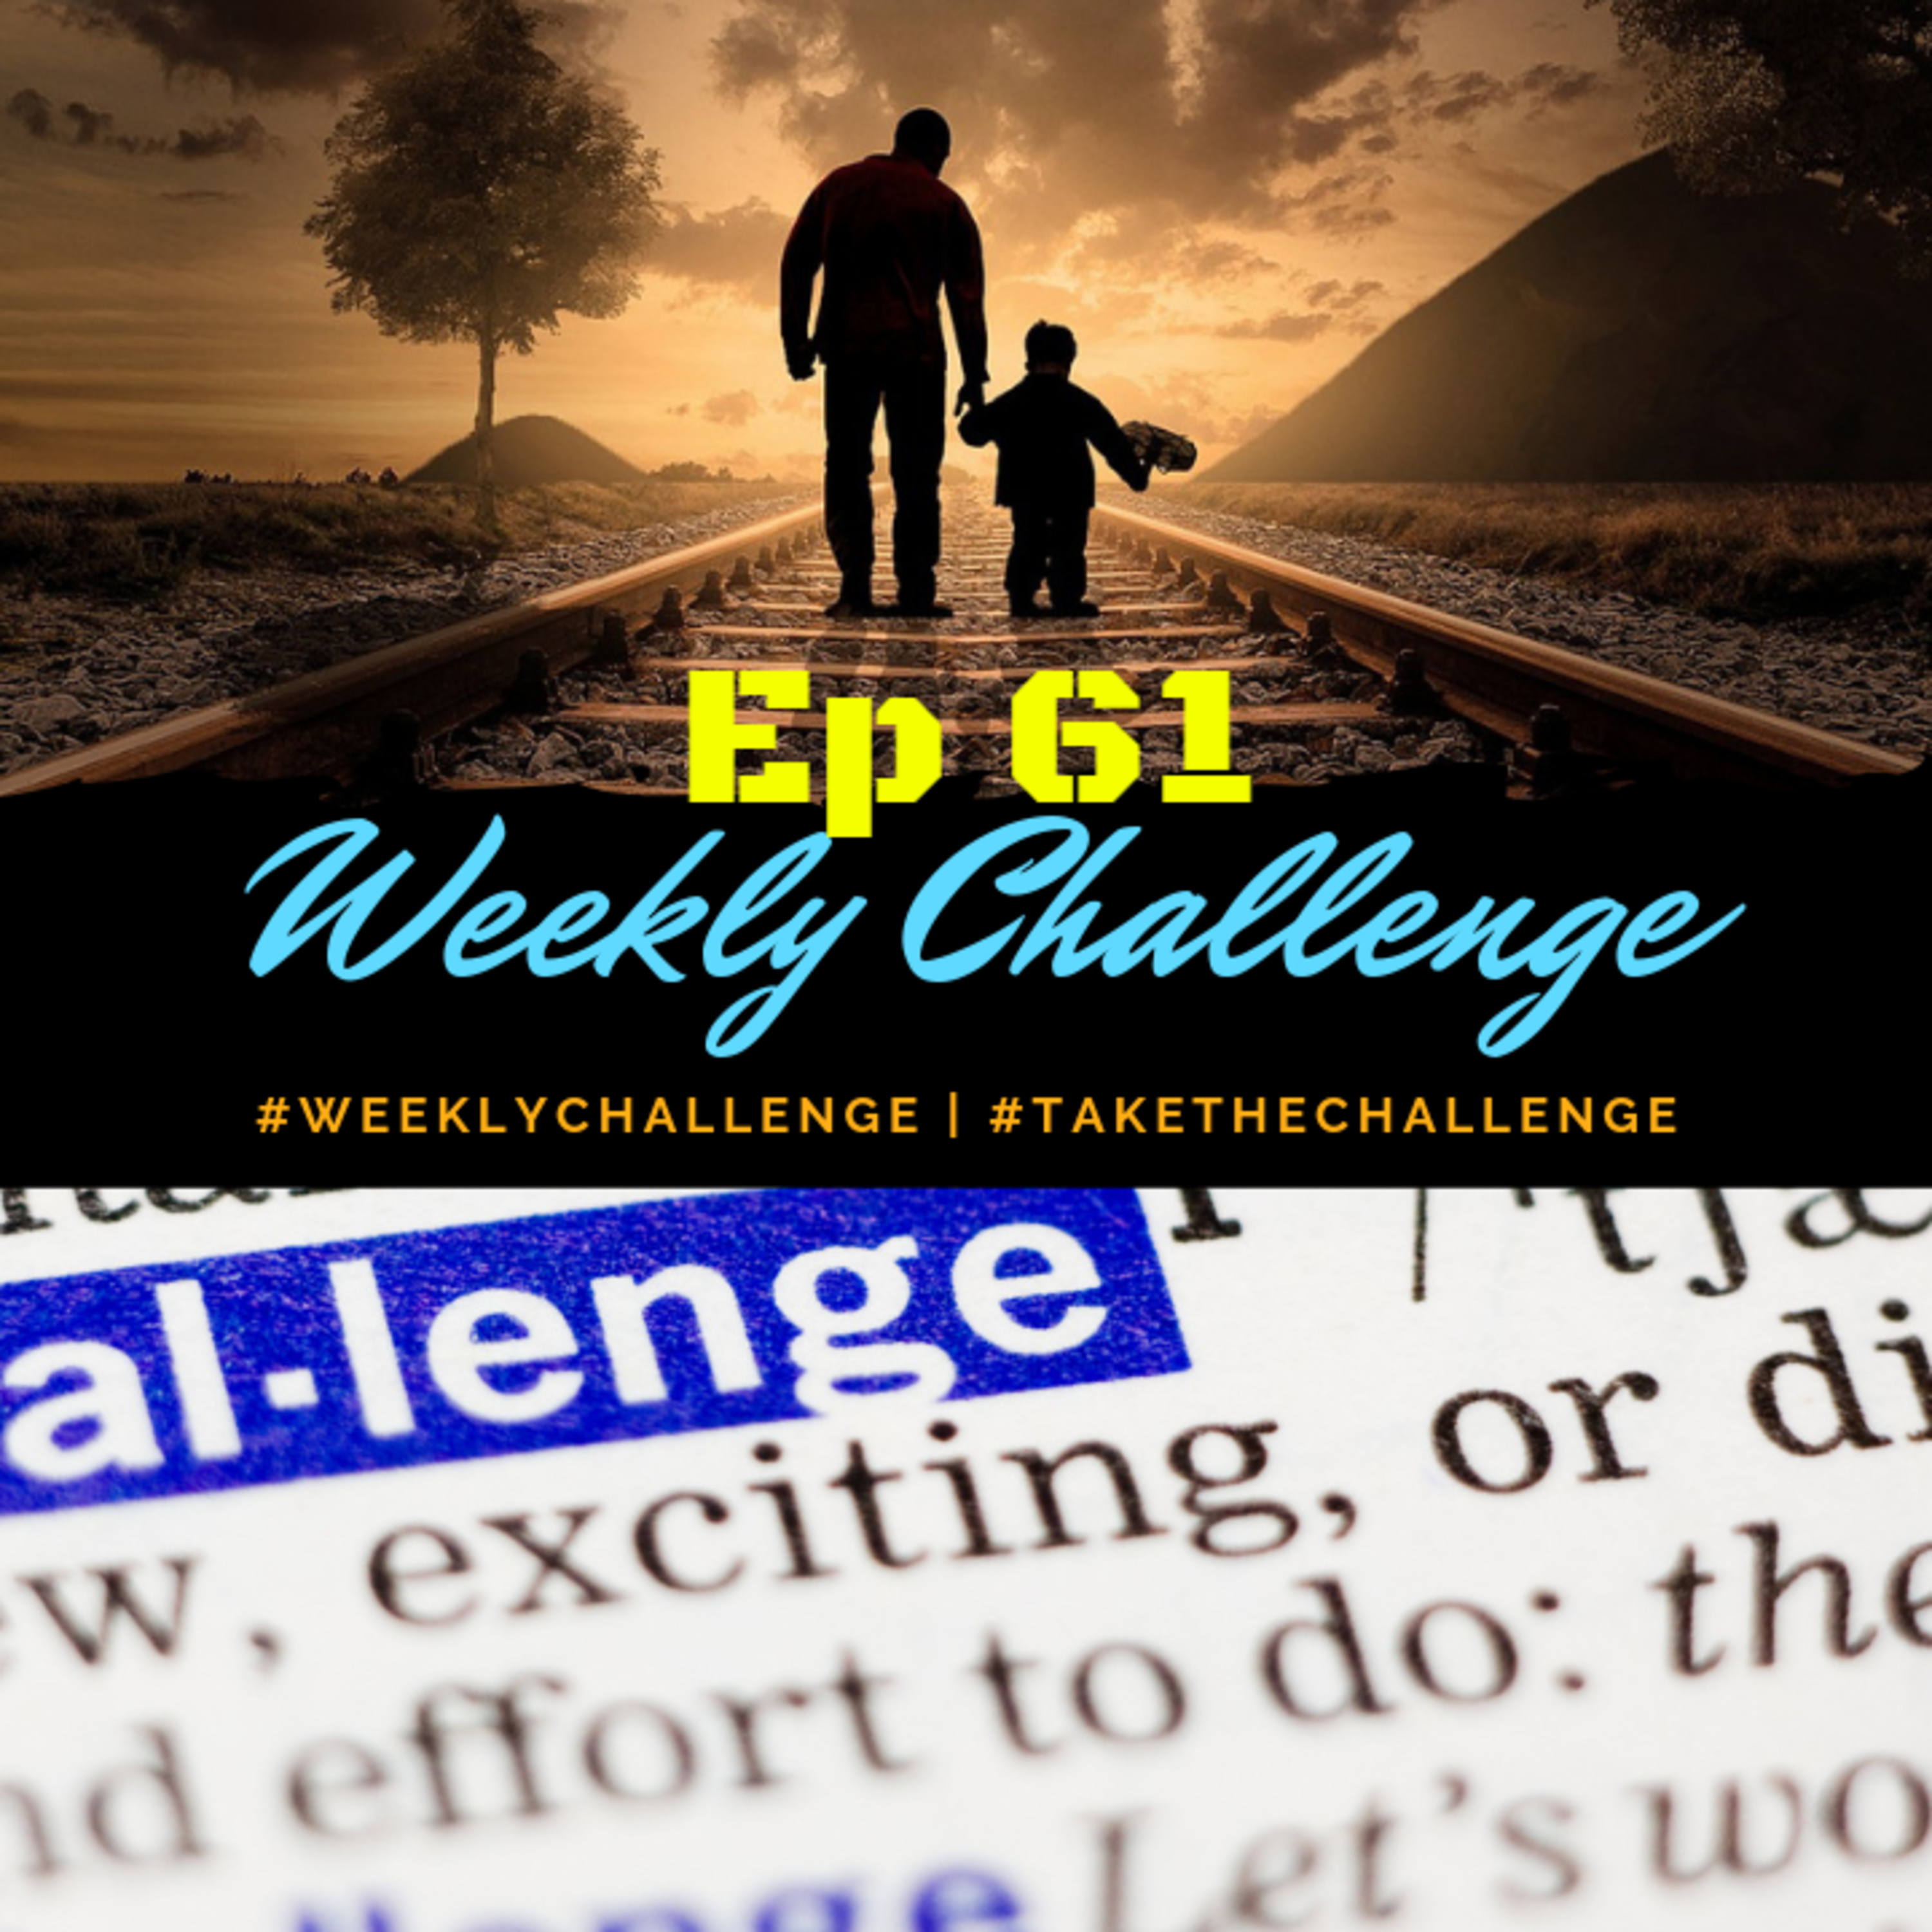 Stop Playing The Blame Game | Weekly Challenge From Ep 61